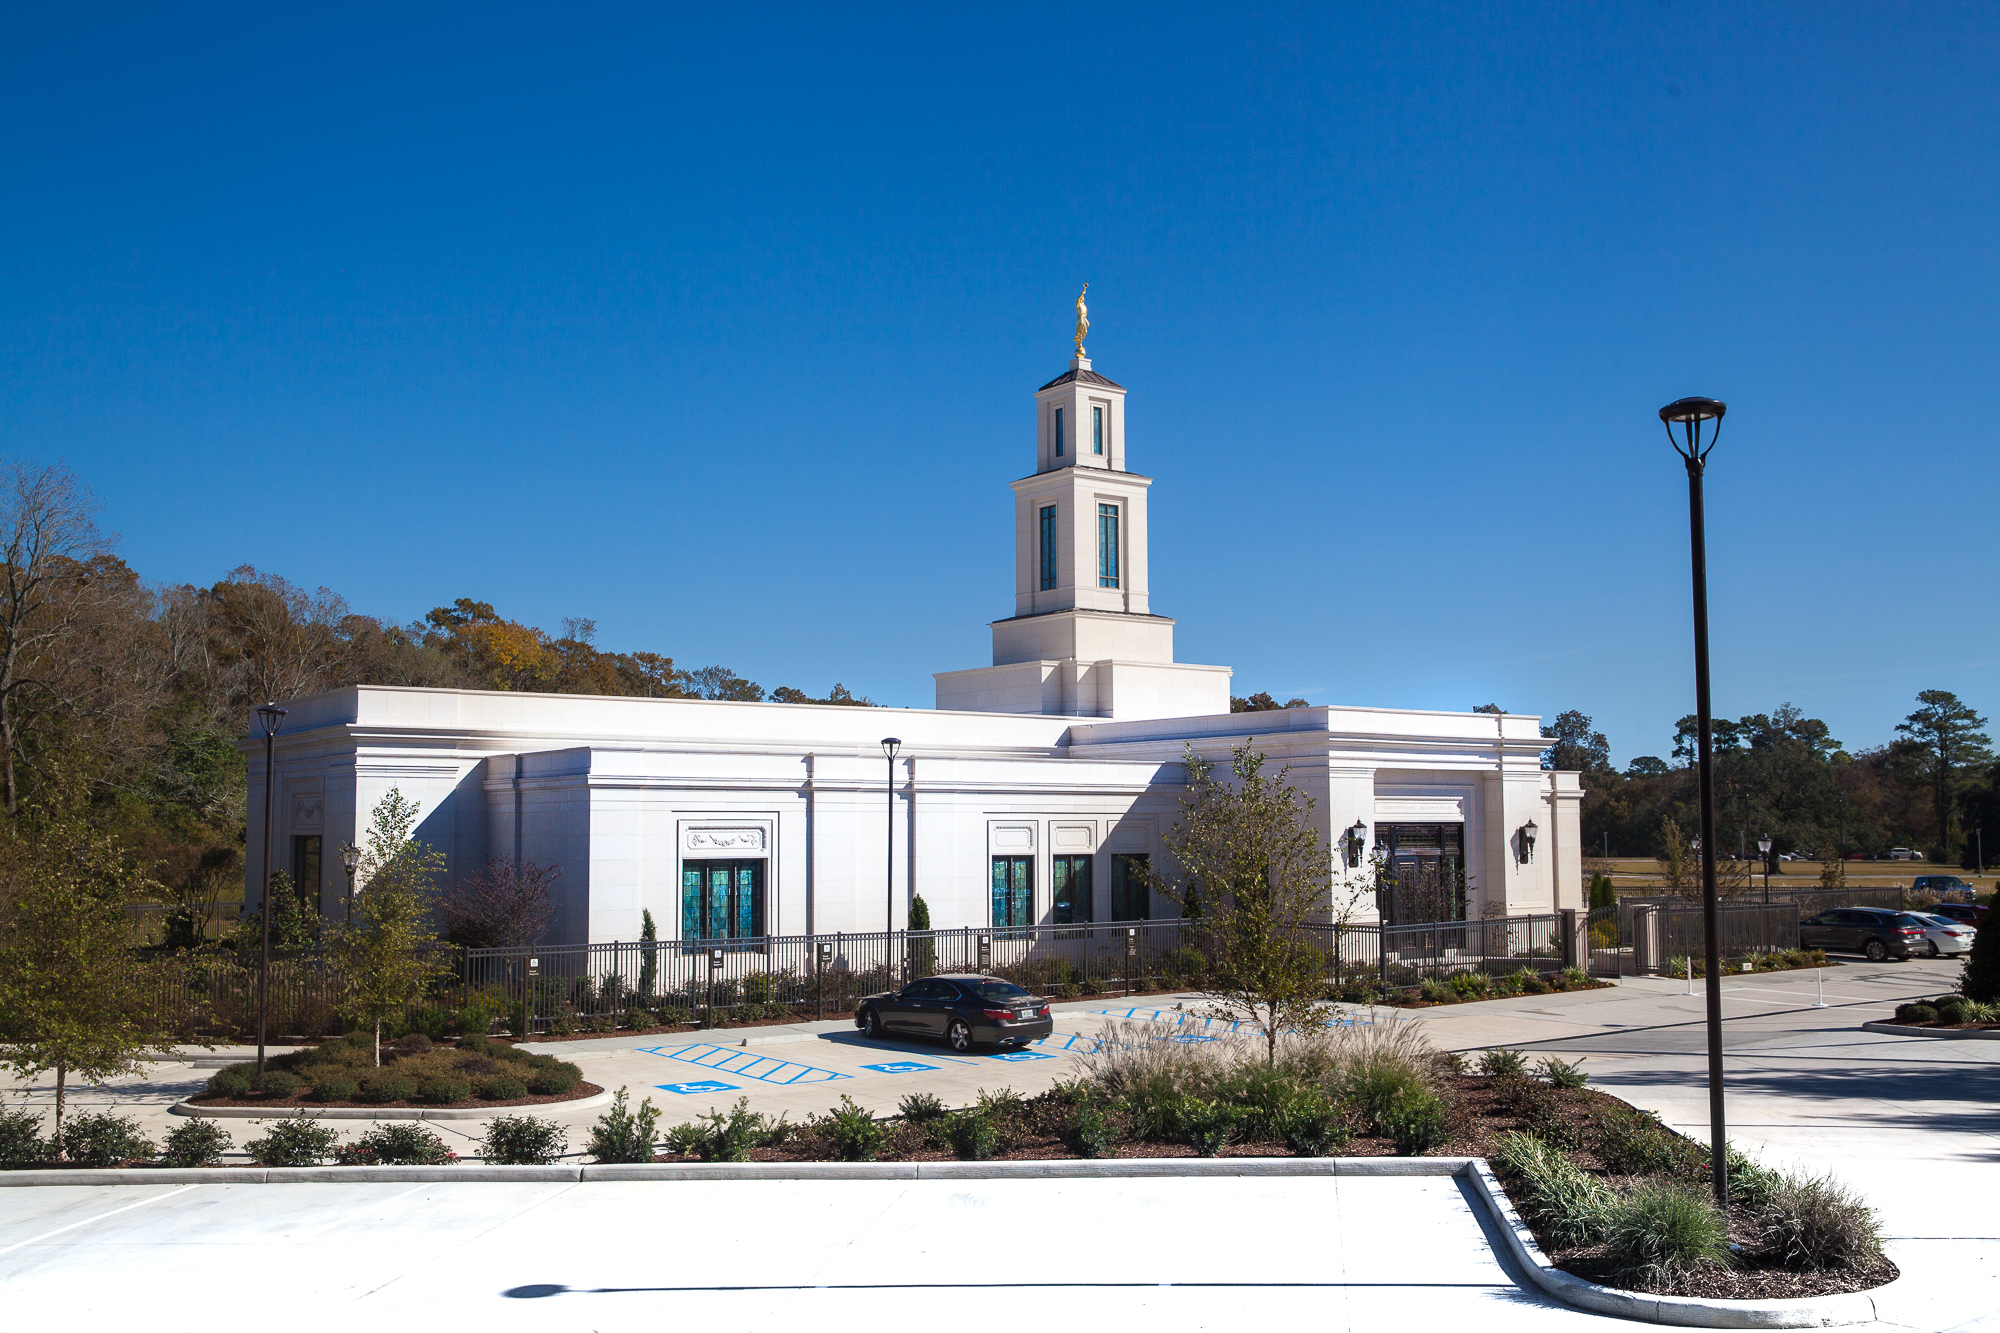 The Baton Rouge Louisiana Temple under blue skies on Saturday, Nov. 16, 2019, prior to its rededication by Elder Quentin L. Cook of the Quorum of the Twelve Apostles.